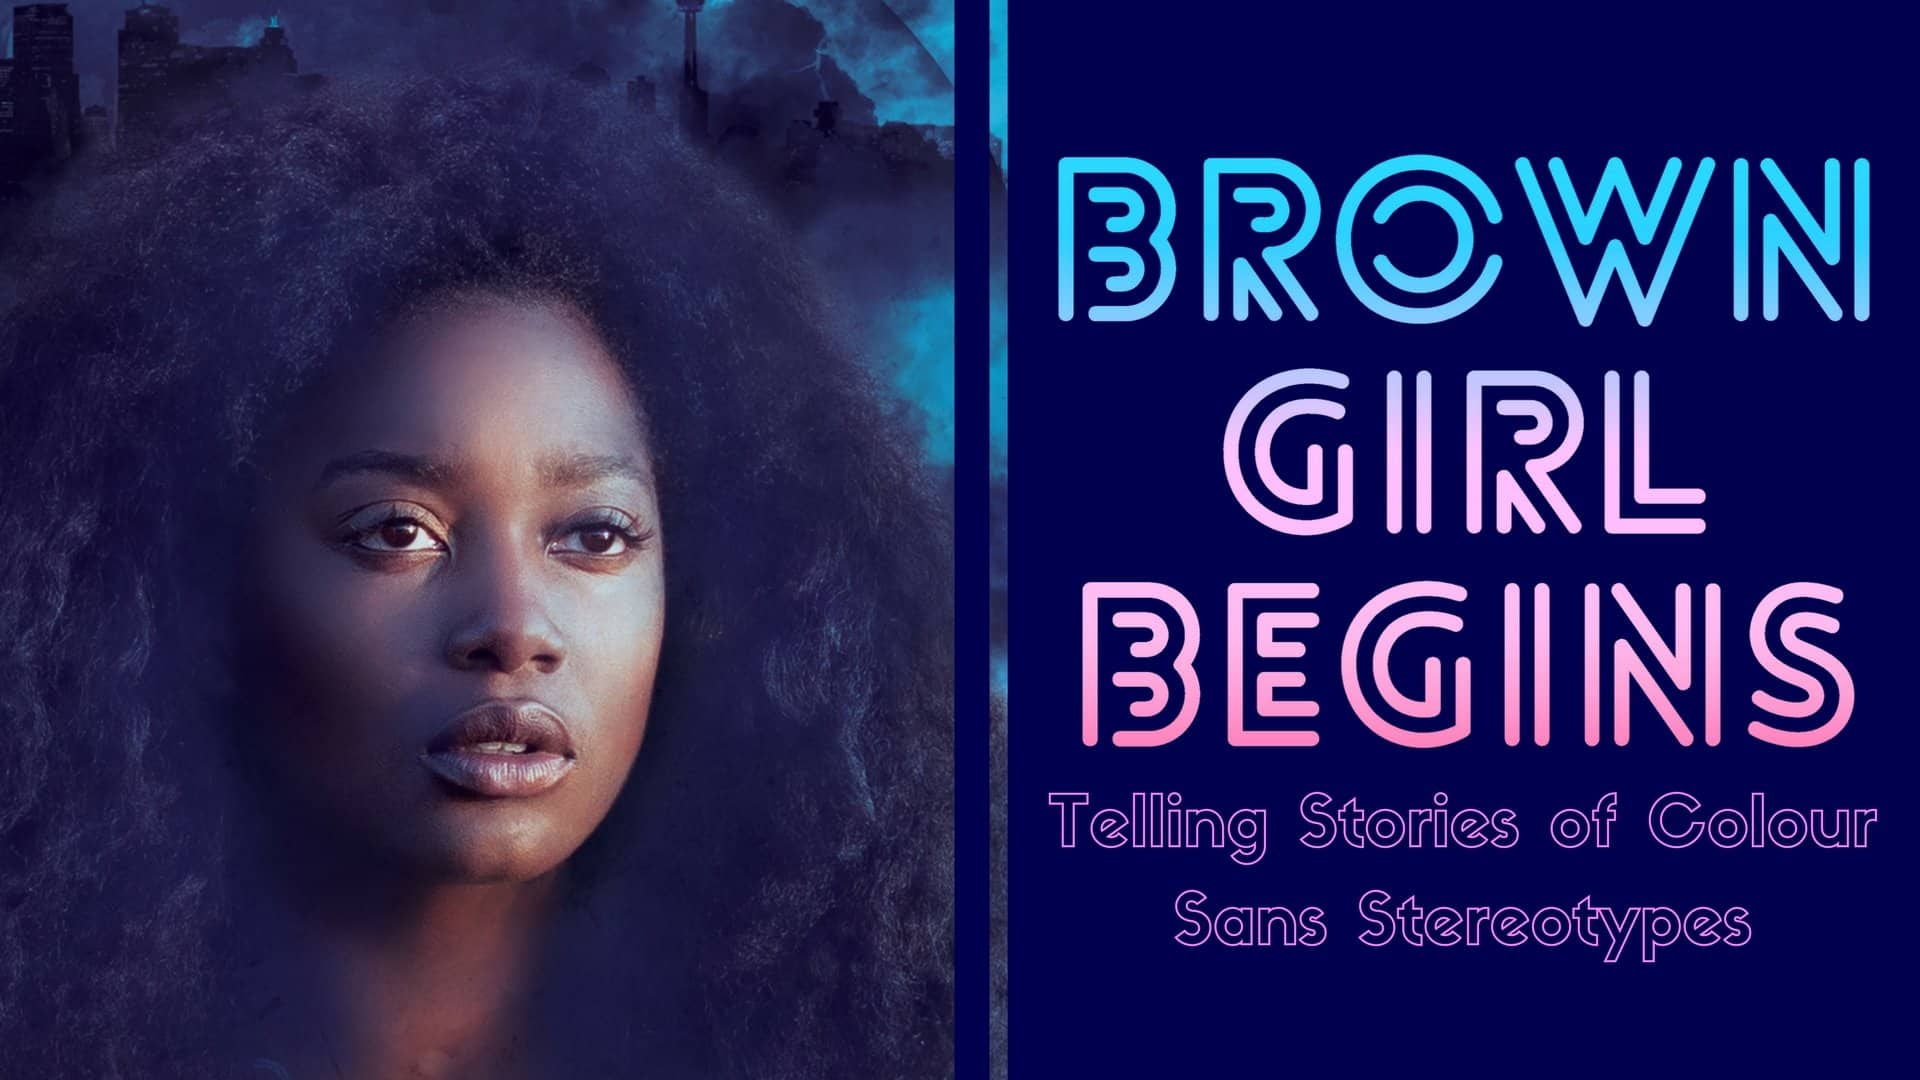 Brown Girl Begins — Telling Stories of Colour Sans Stereotypes (Featured Image)